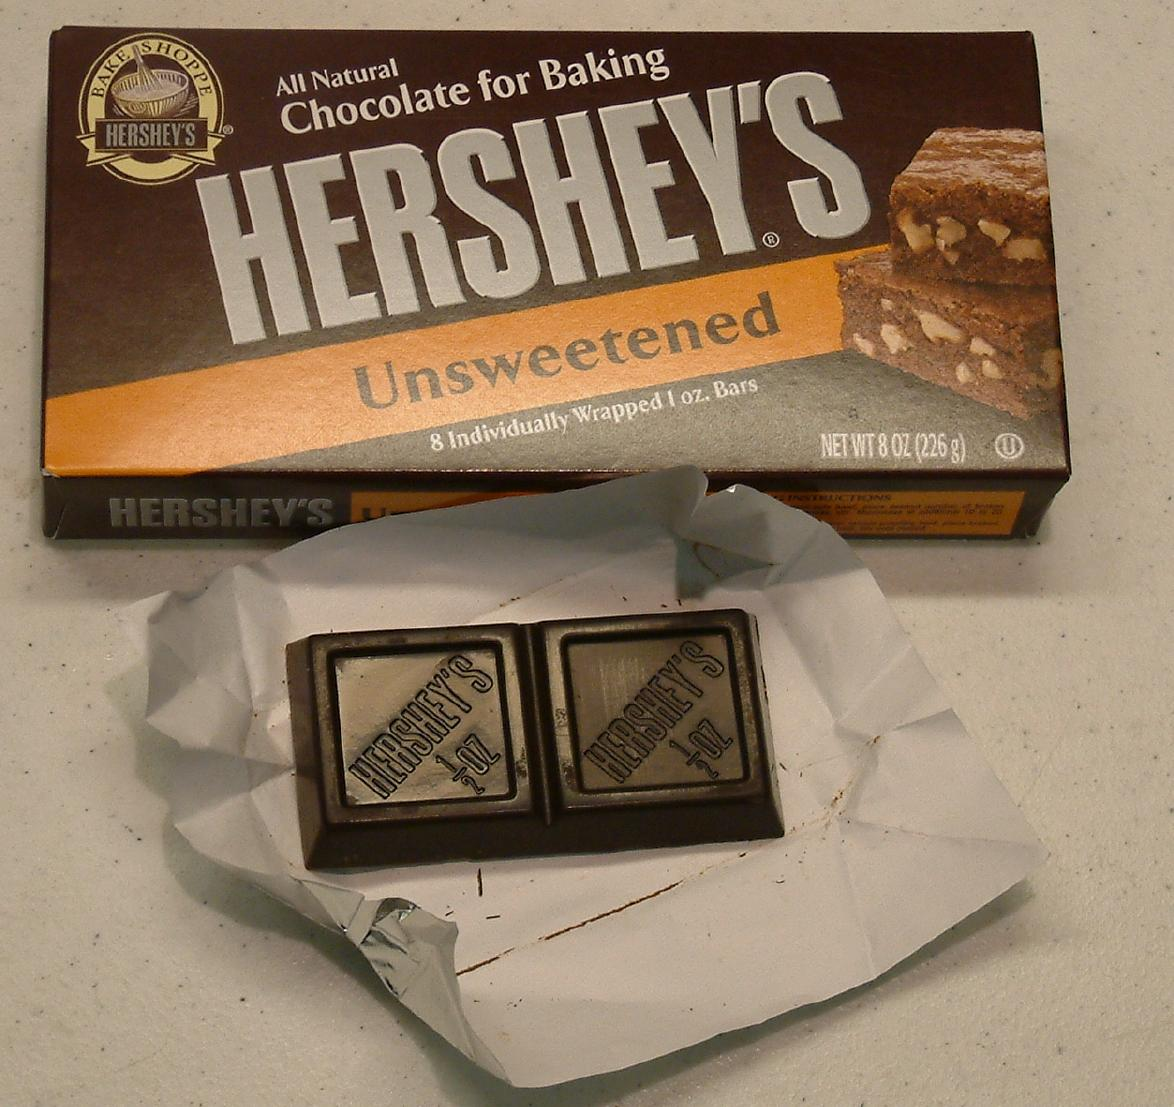 Unsweetened chocolate